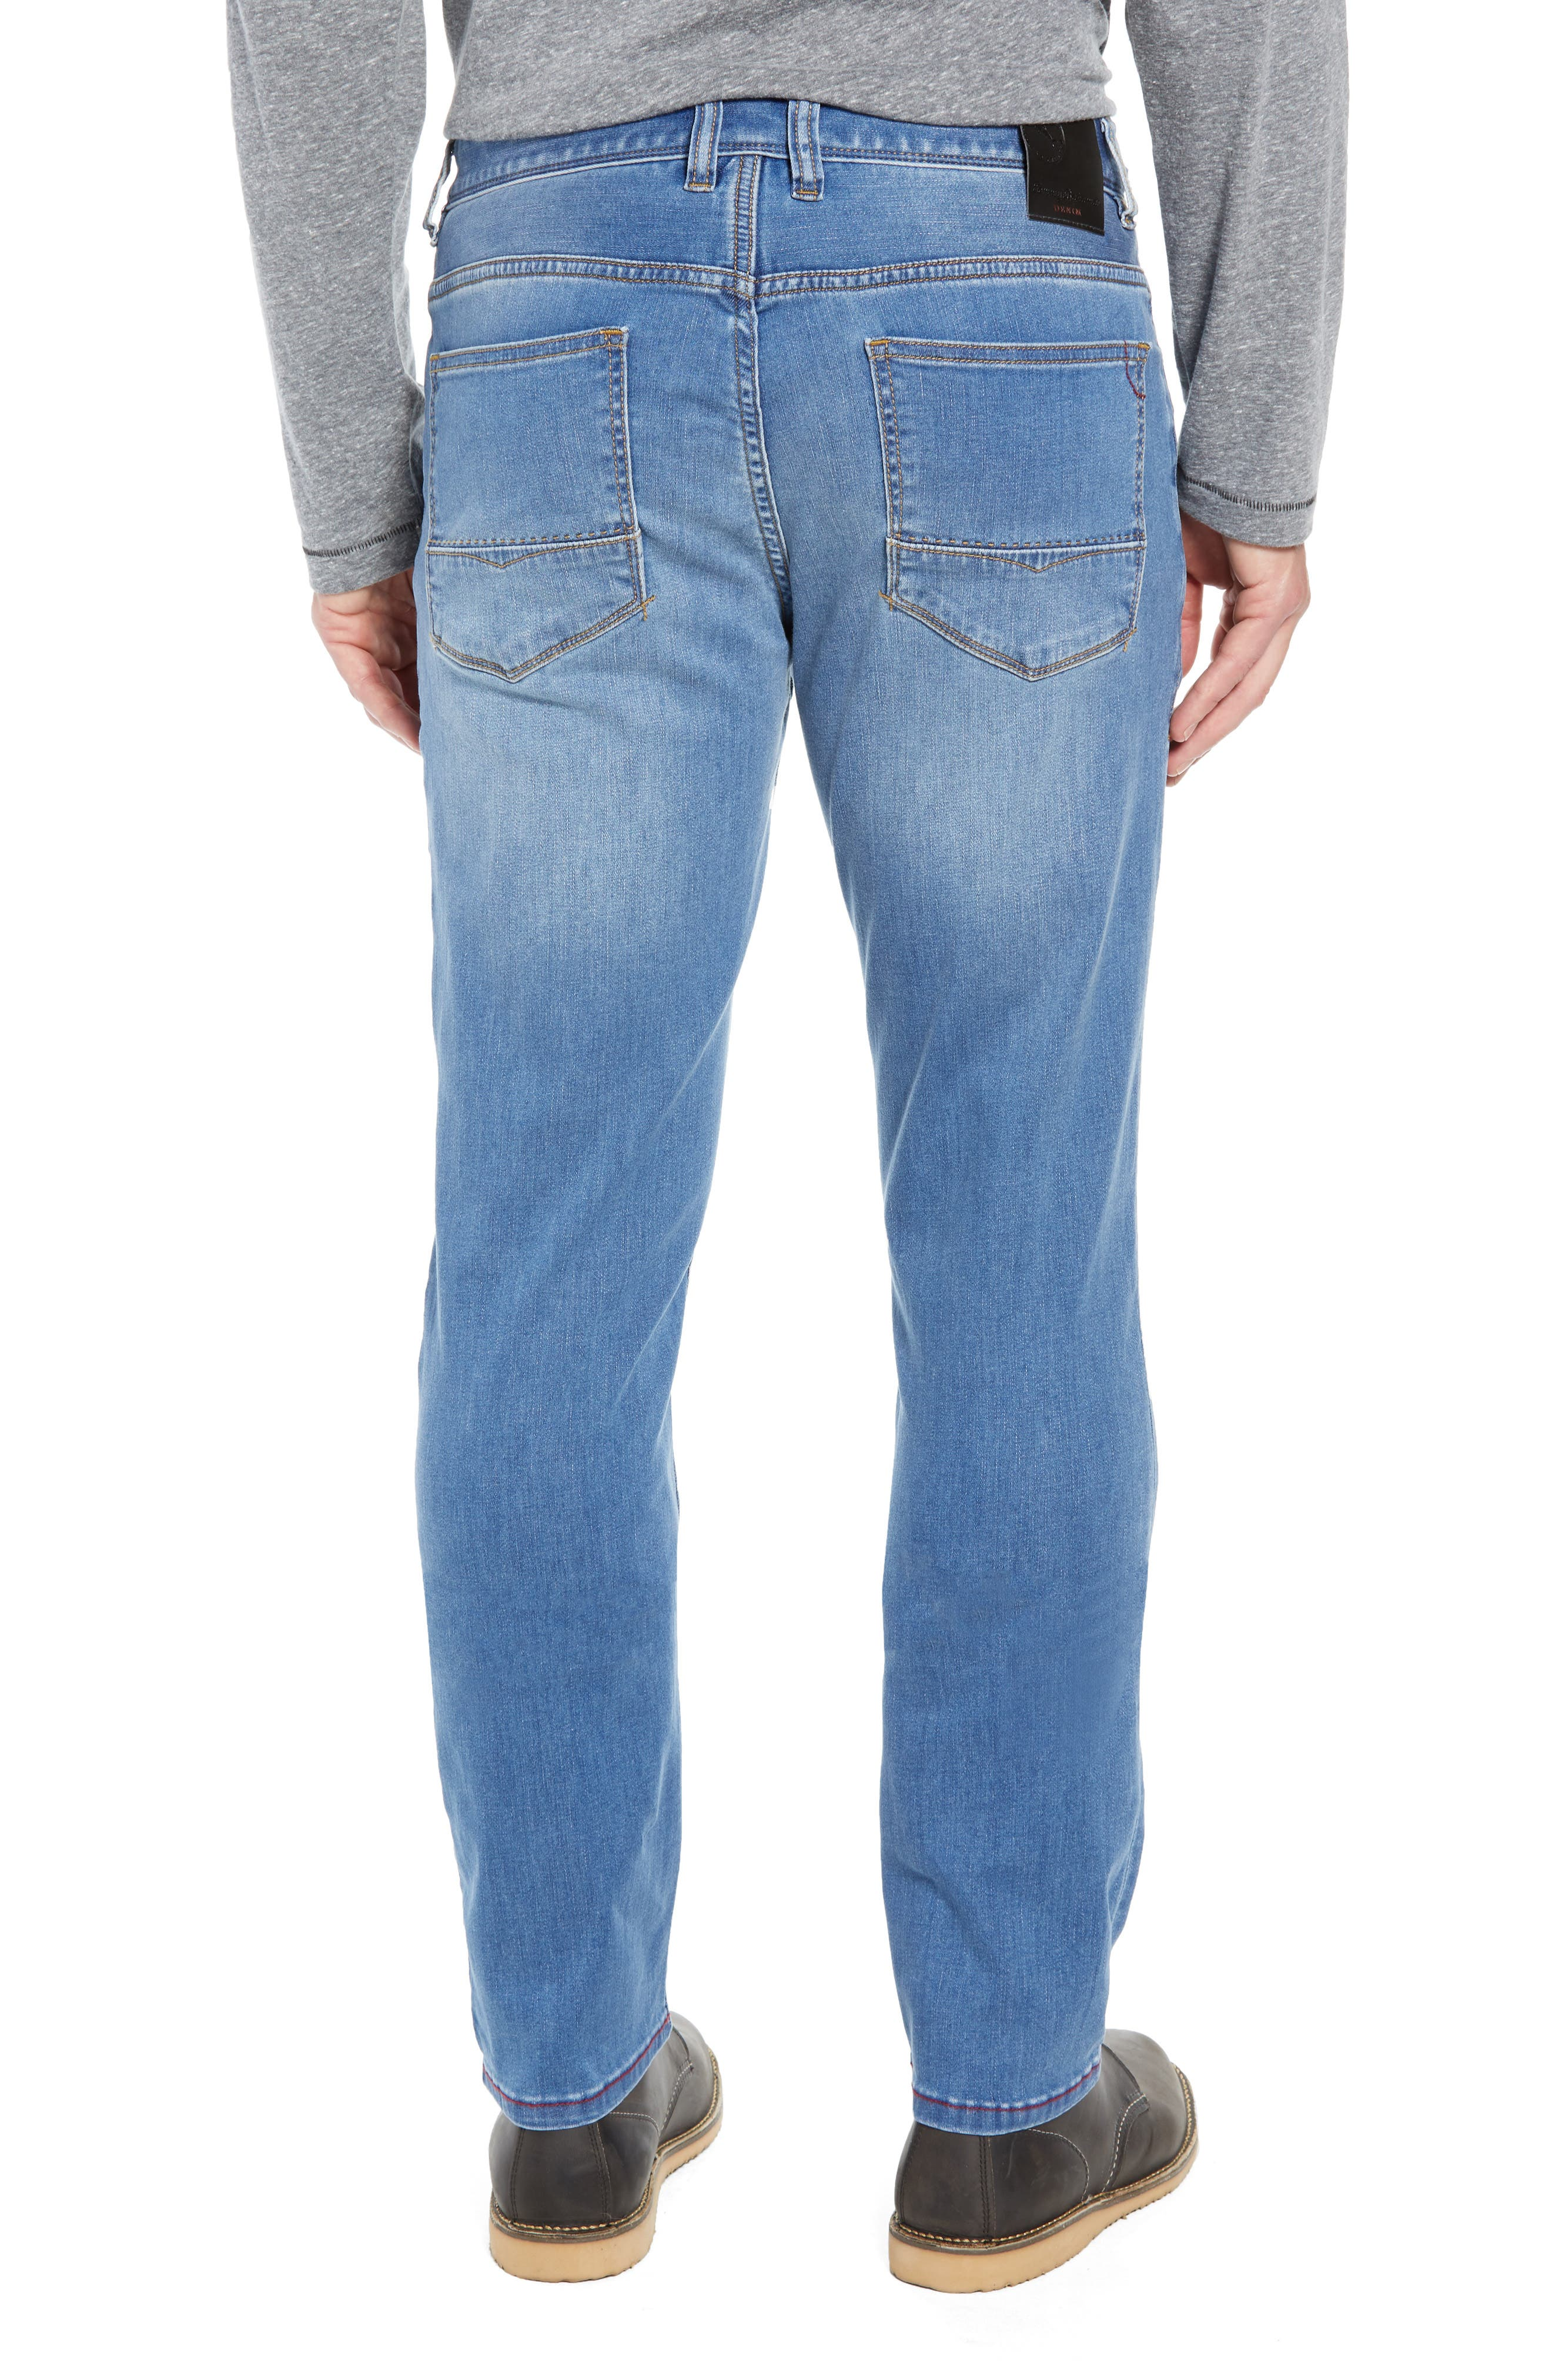 Costa Rica Vintage Regular Fit Jeans,                             Alternate thumbnail 2, color,                             400